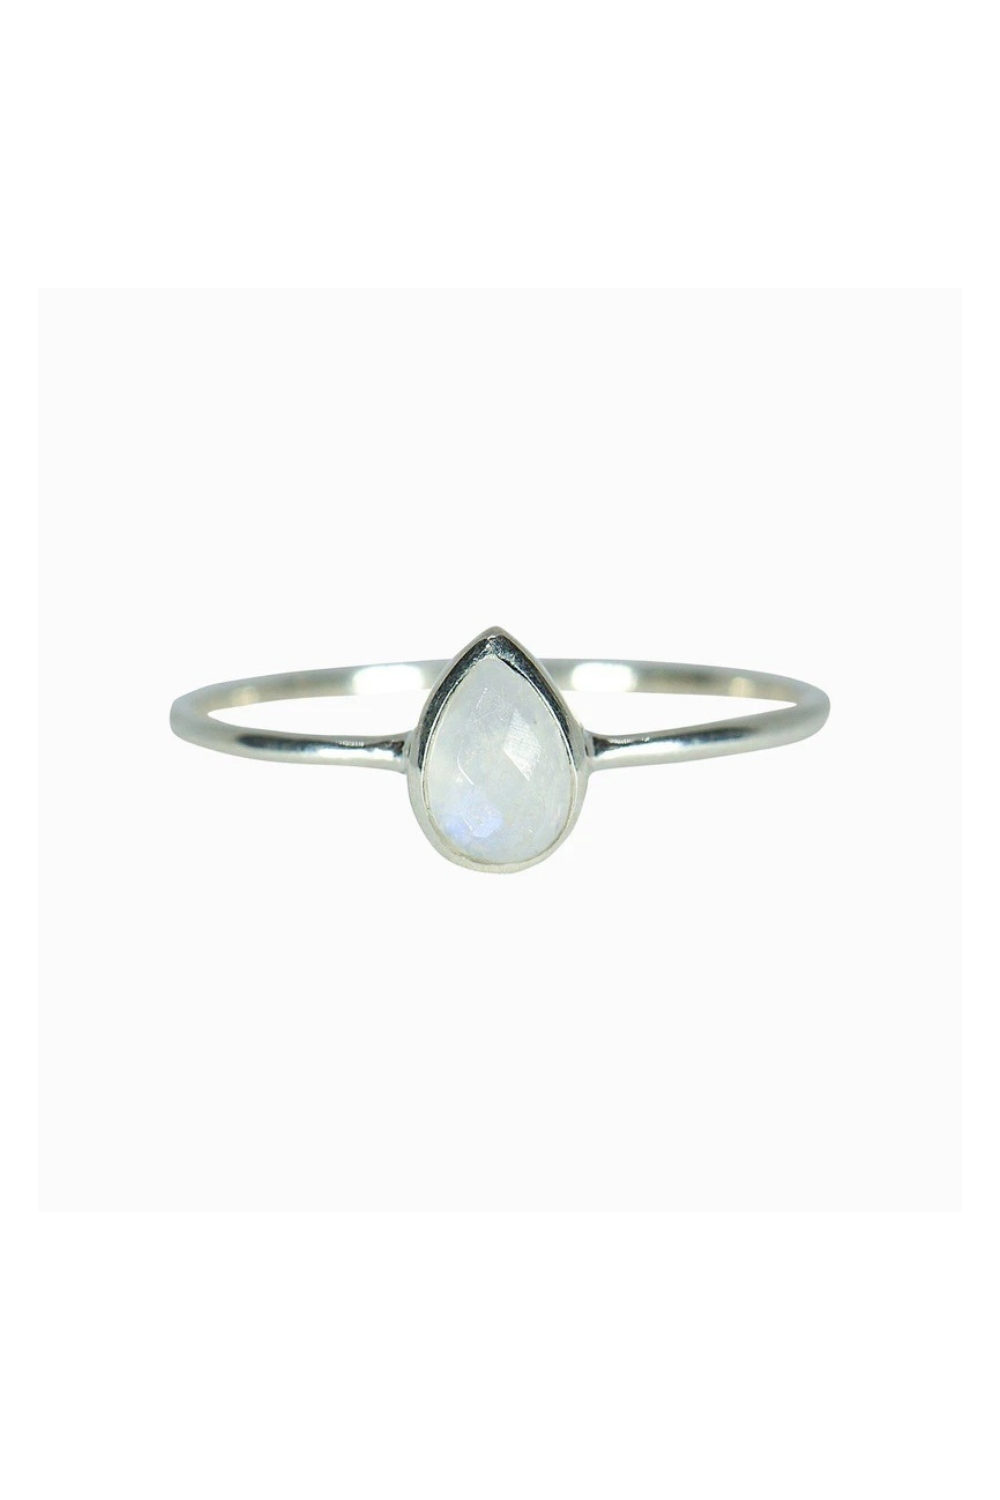 Pura Vida Silver Teardrop Moonstone Ring | Bella Lucca Boutique